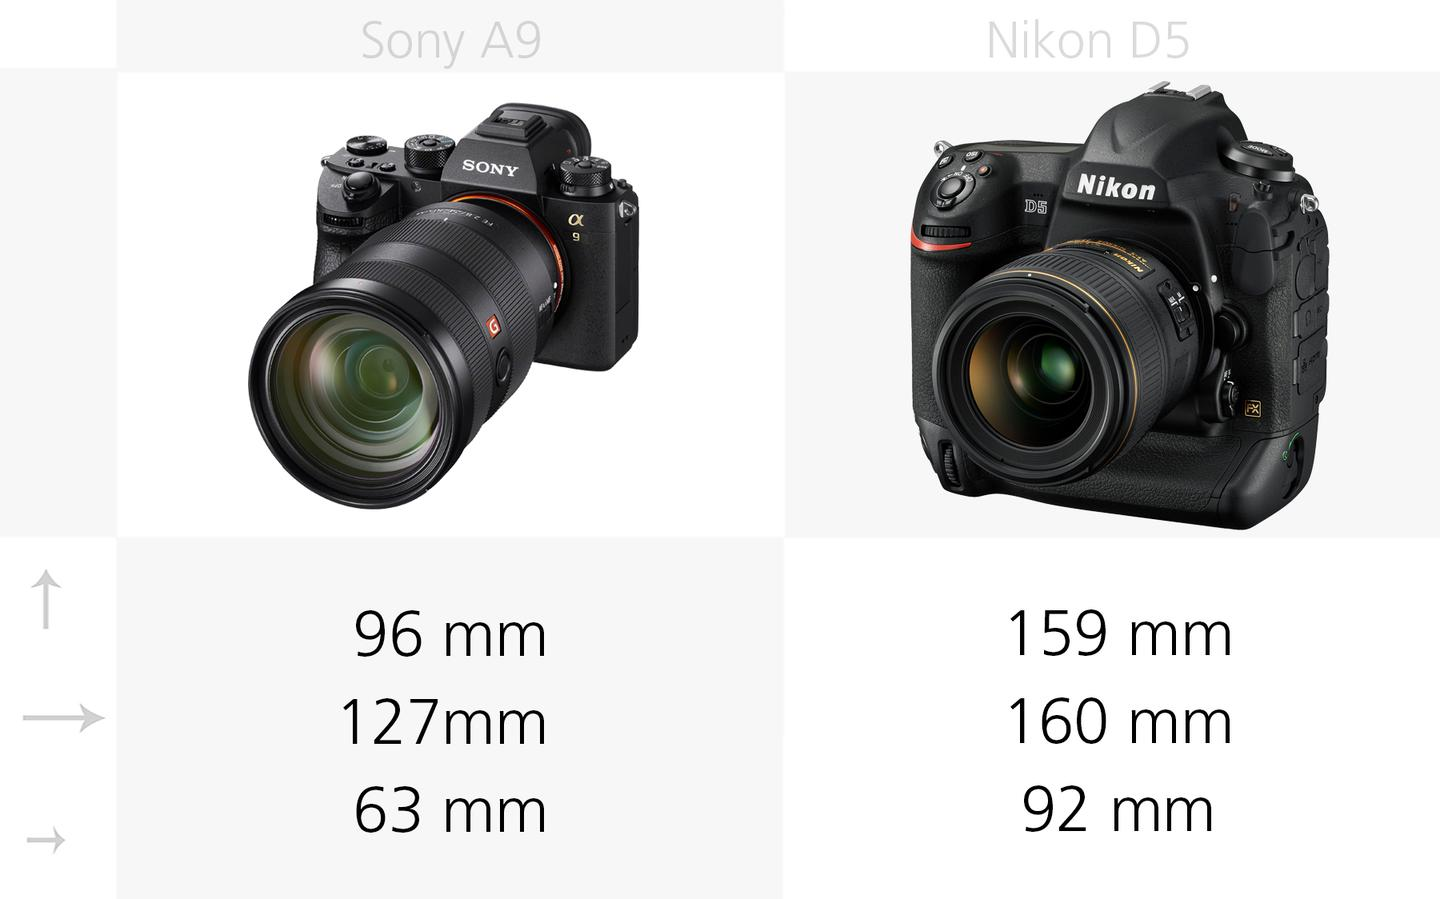 The dimensionsof the Sony A9 and Nikon D5compared